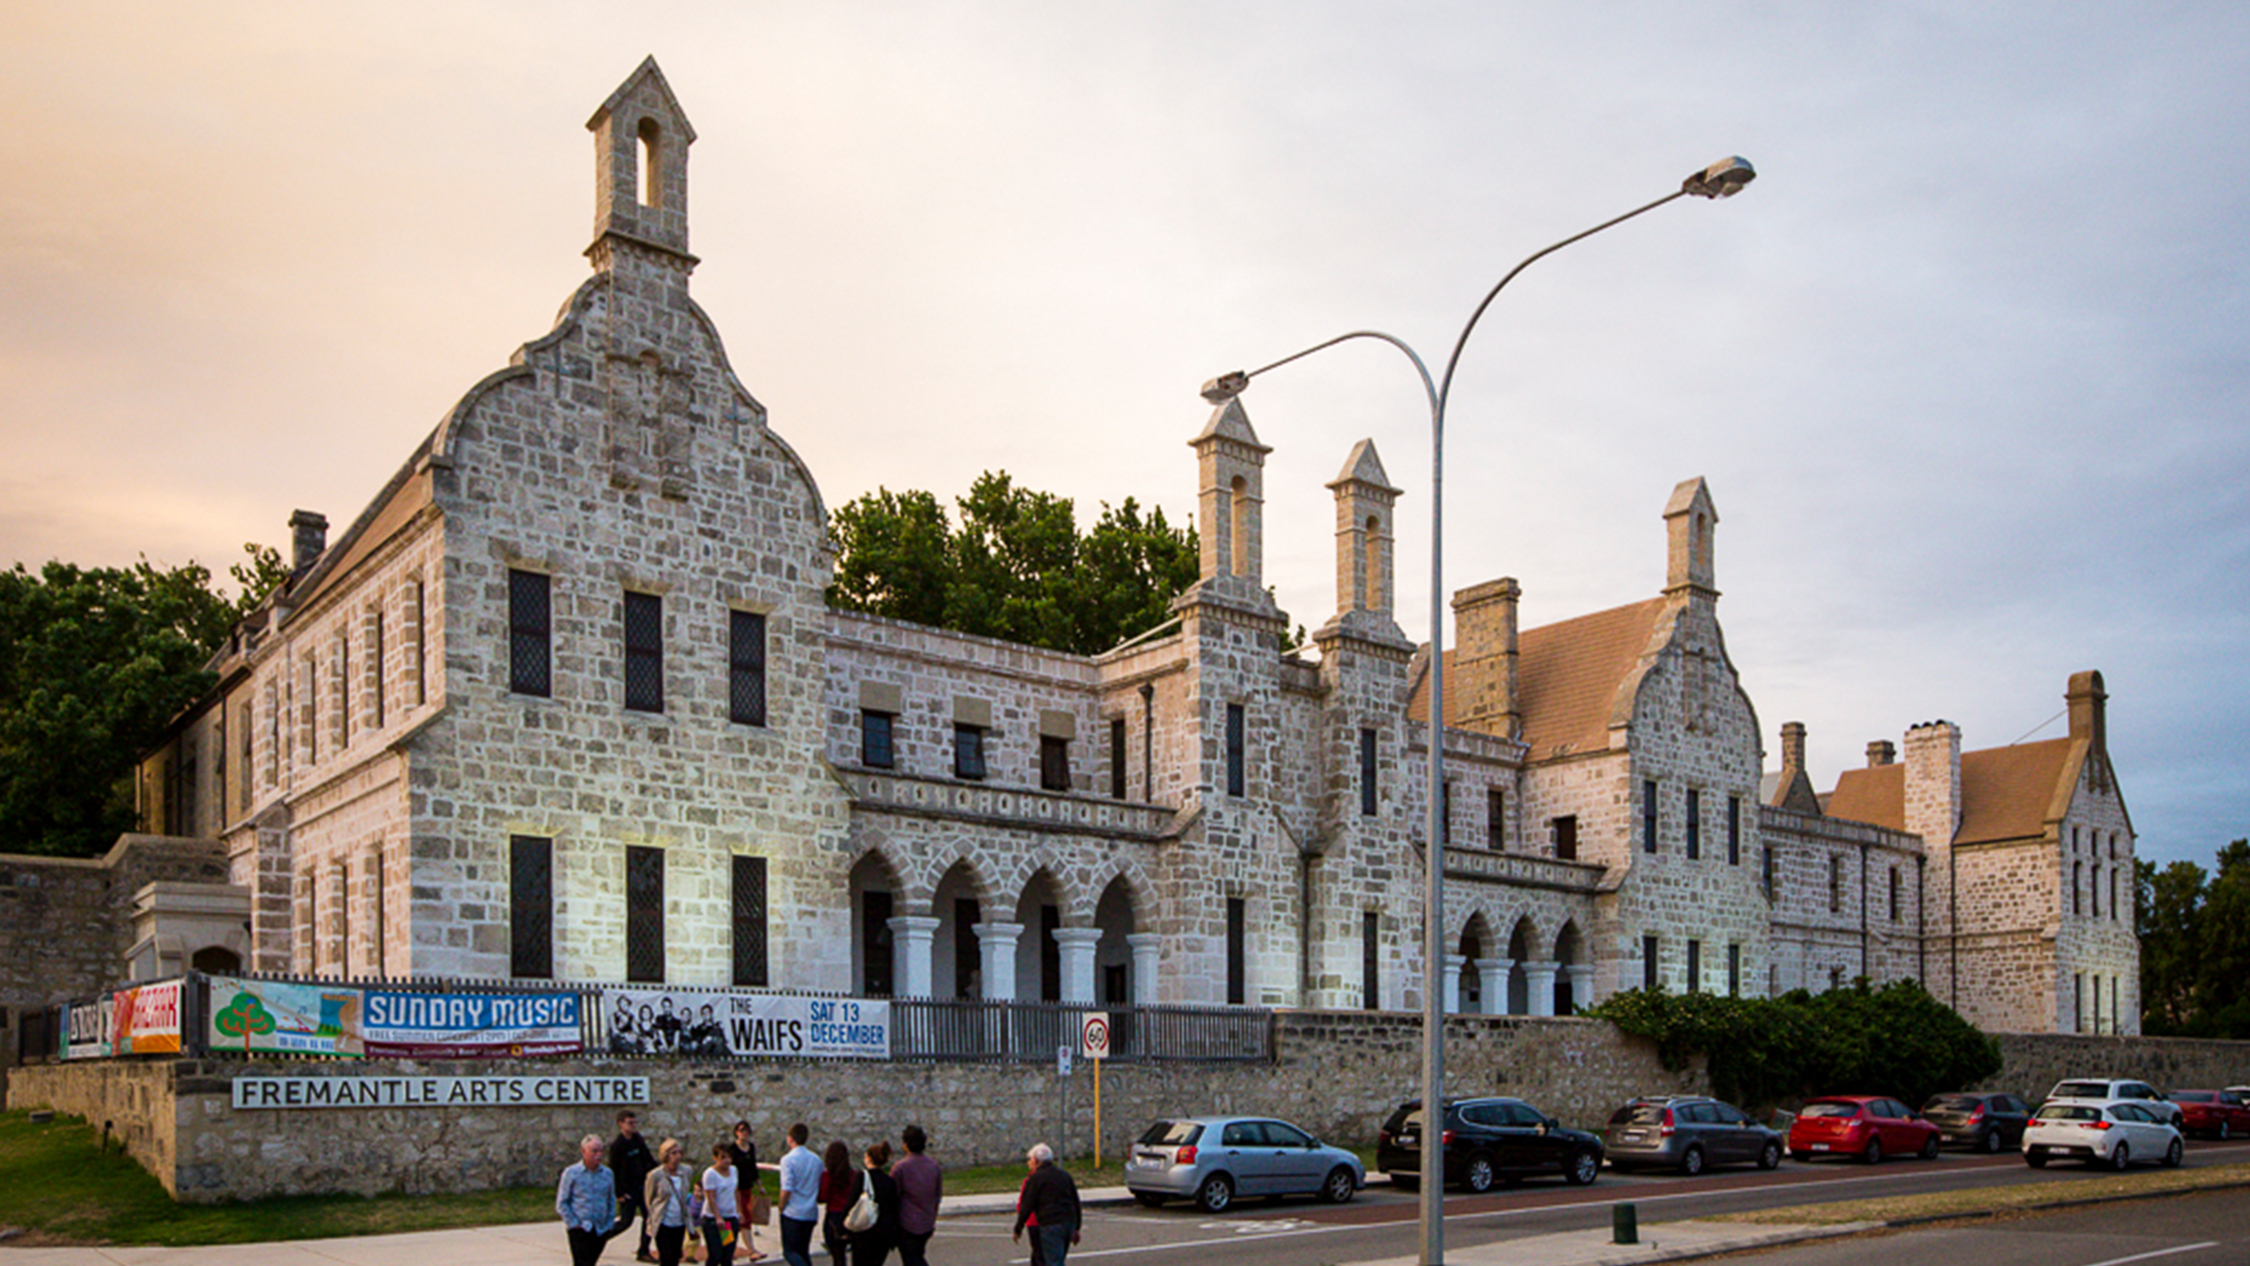 Fremantle Arts Centre